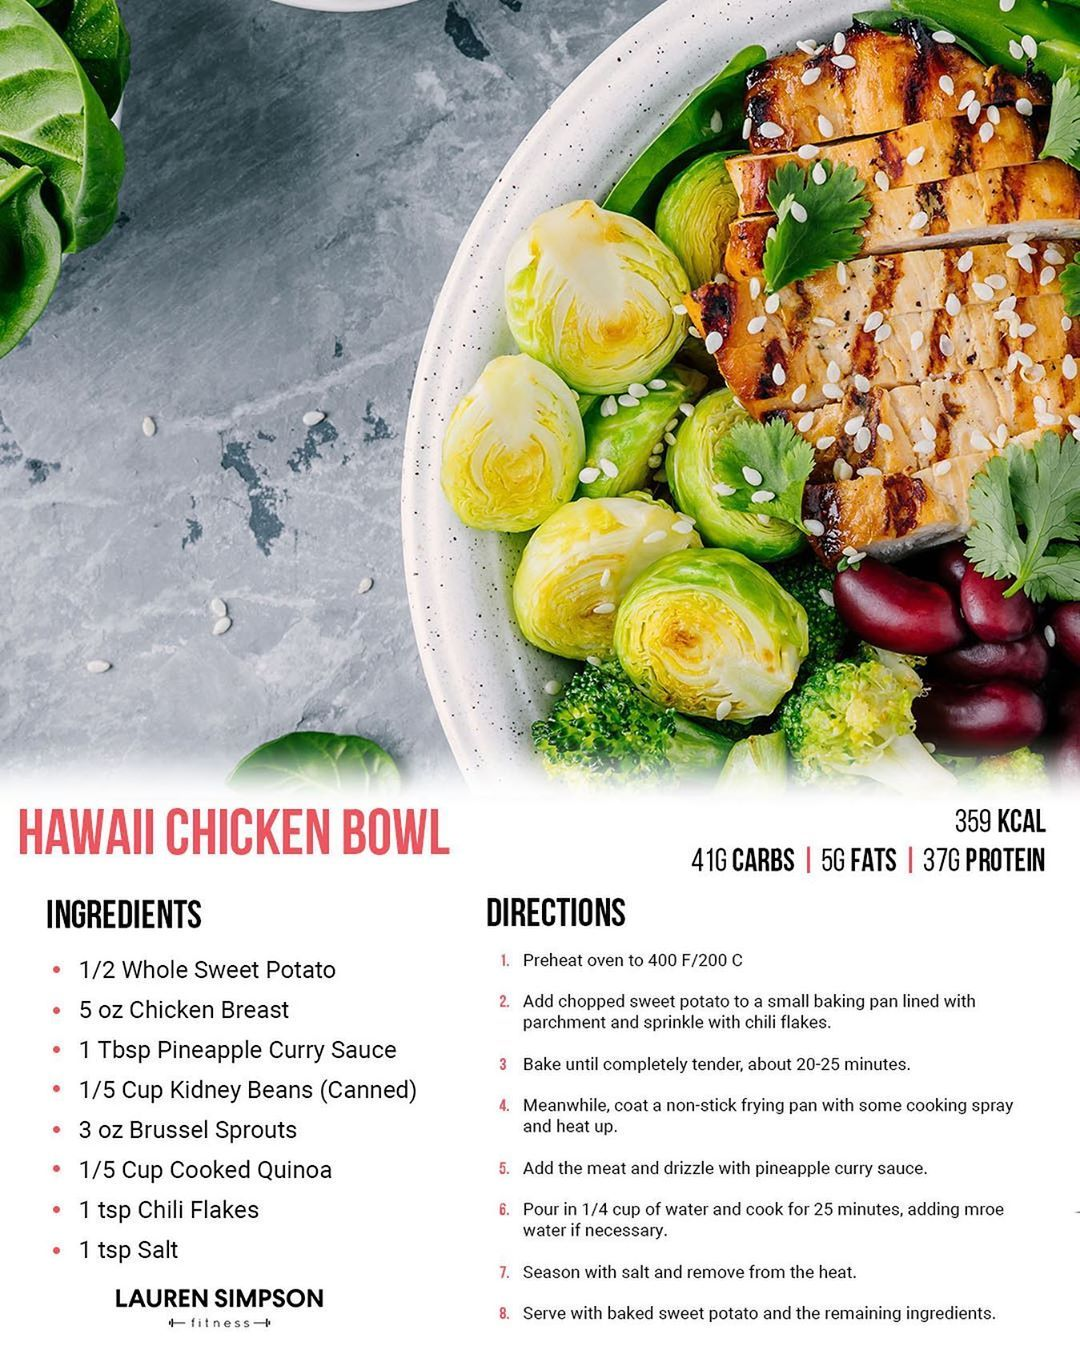 Lauren Simpson Fitness On Instagram Just Another Little Taster Of Some Of The Brand New Recipes That Will Feature In My Upco New Recipes Recipes Chicken Bowl